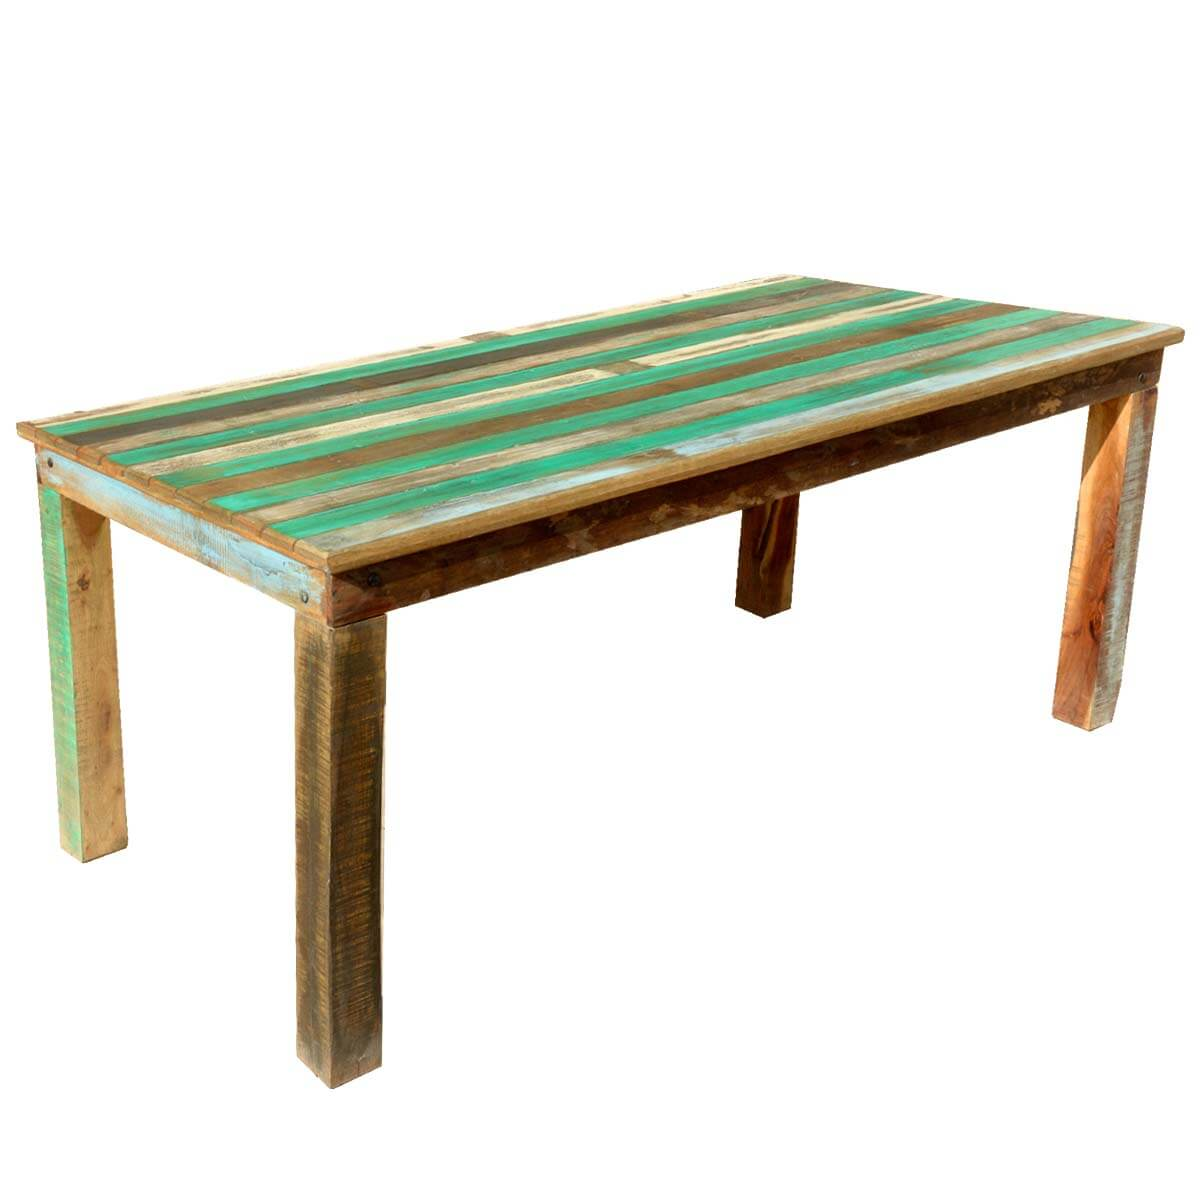 Appalachian rustic reclaimed wood striped top dining table for Reclaimed wood dining table